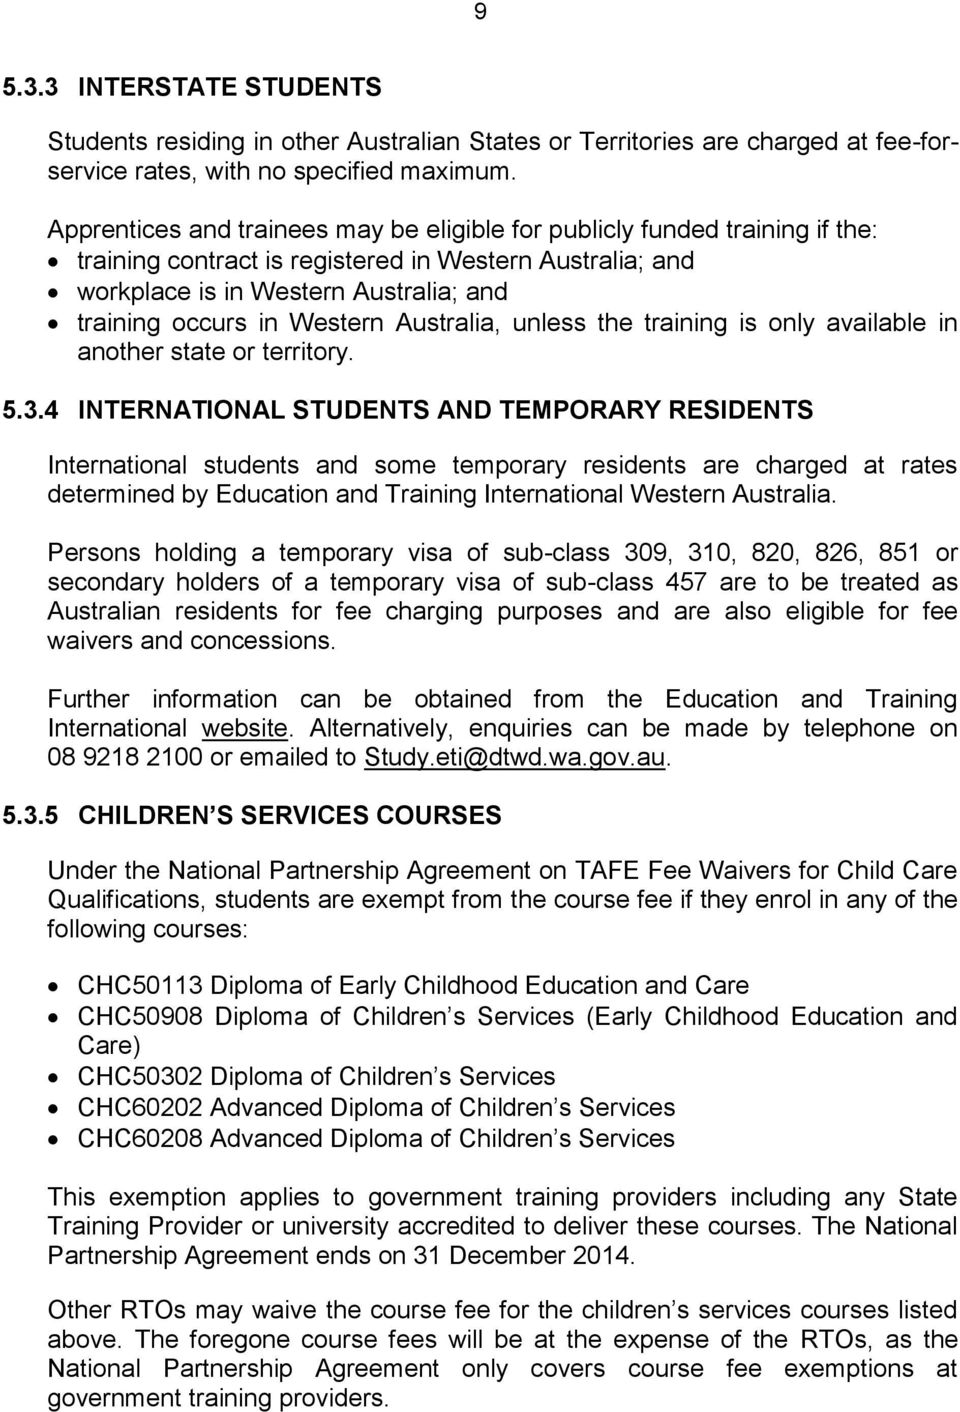 Western Australia, unless the training is only available in another state or territory. 5.3.